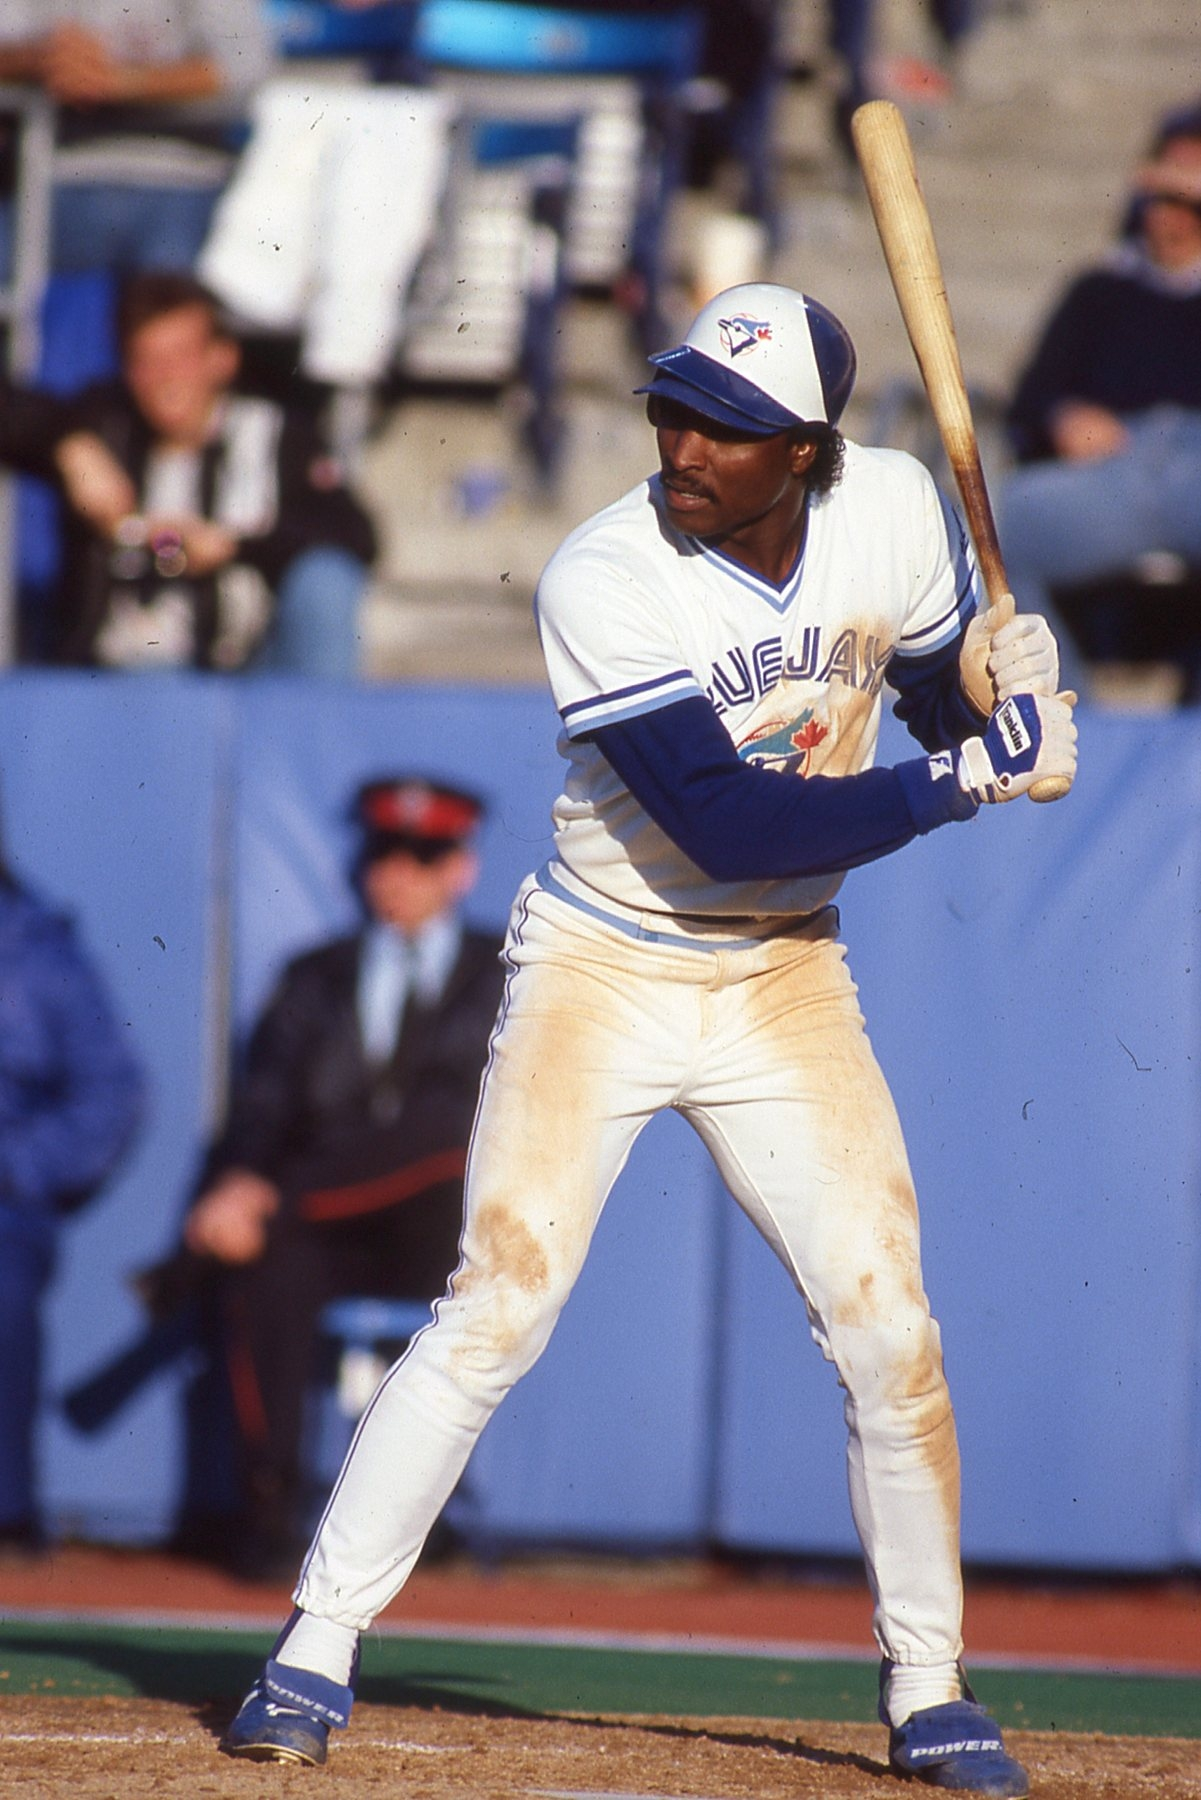 Toronto Blue Jays great Lloyd Moseby will be inducted into the Canadian Baseball Hall of Fame on Saturday. Photo Credit: Canadian Baseball Hall of Fame